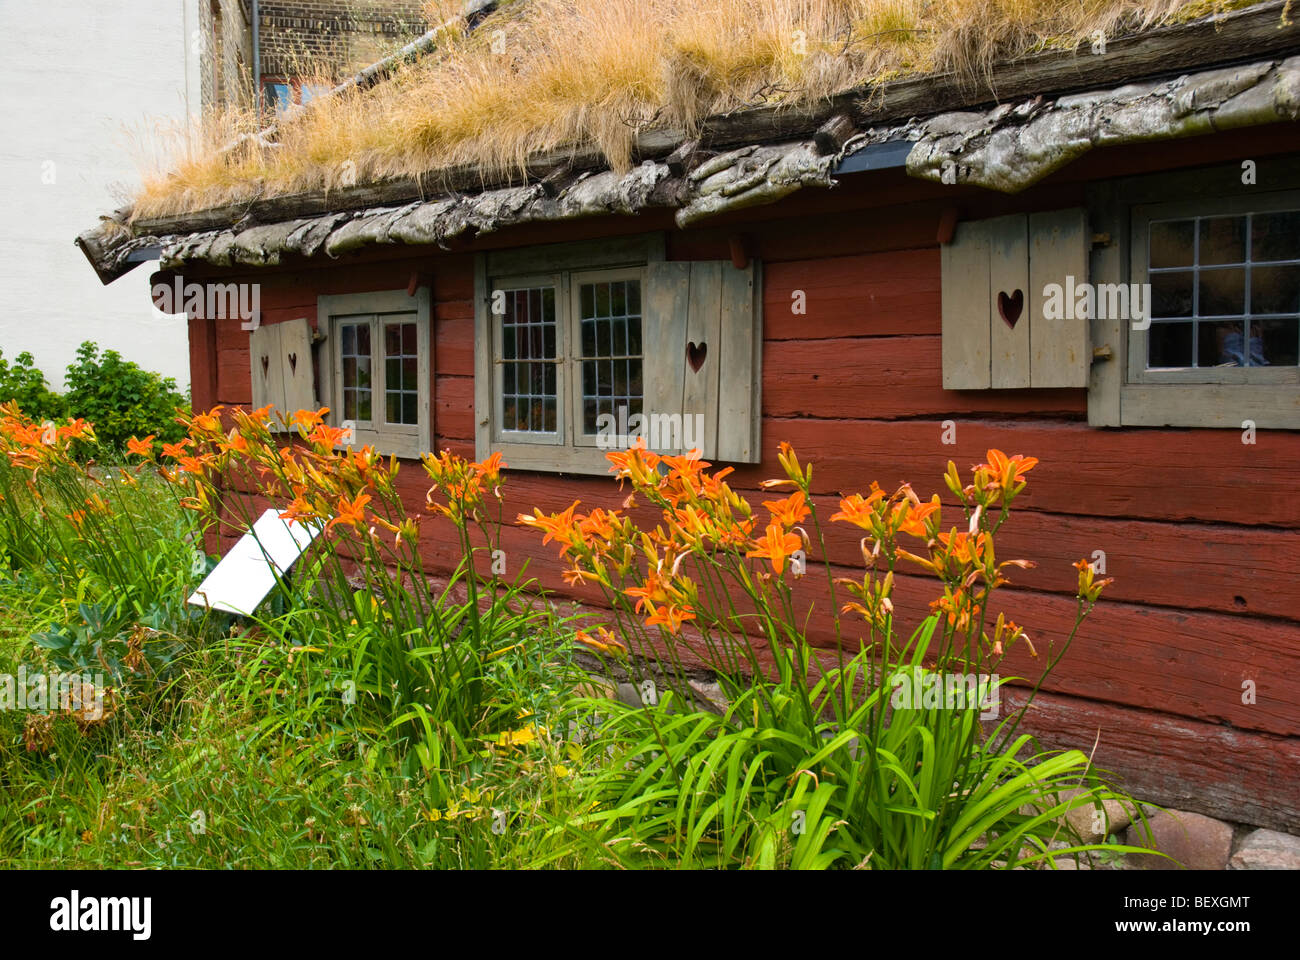 Onsj cottage at Kulturen the open air museum in Lund Skåne Sweden Europe - Stock Image